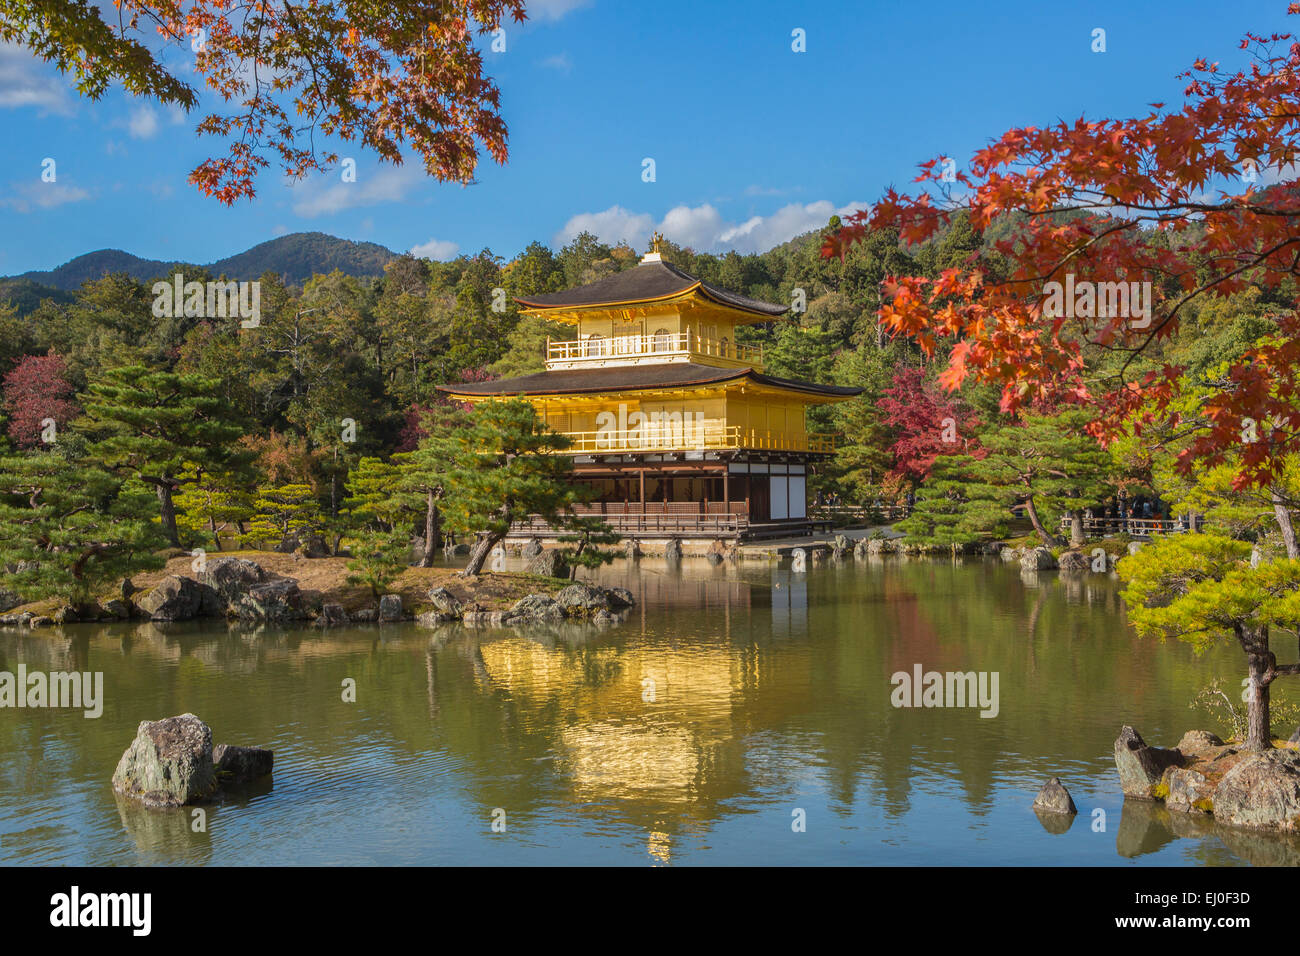 famous landscape architecture in the world. stock photo - world heritage, japan, asia, kansai, kinkaku-ji, kyoto, landscape, temple, architecture, colourful, fall, famous, gold, golden, m famous landscape architecture in the g